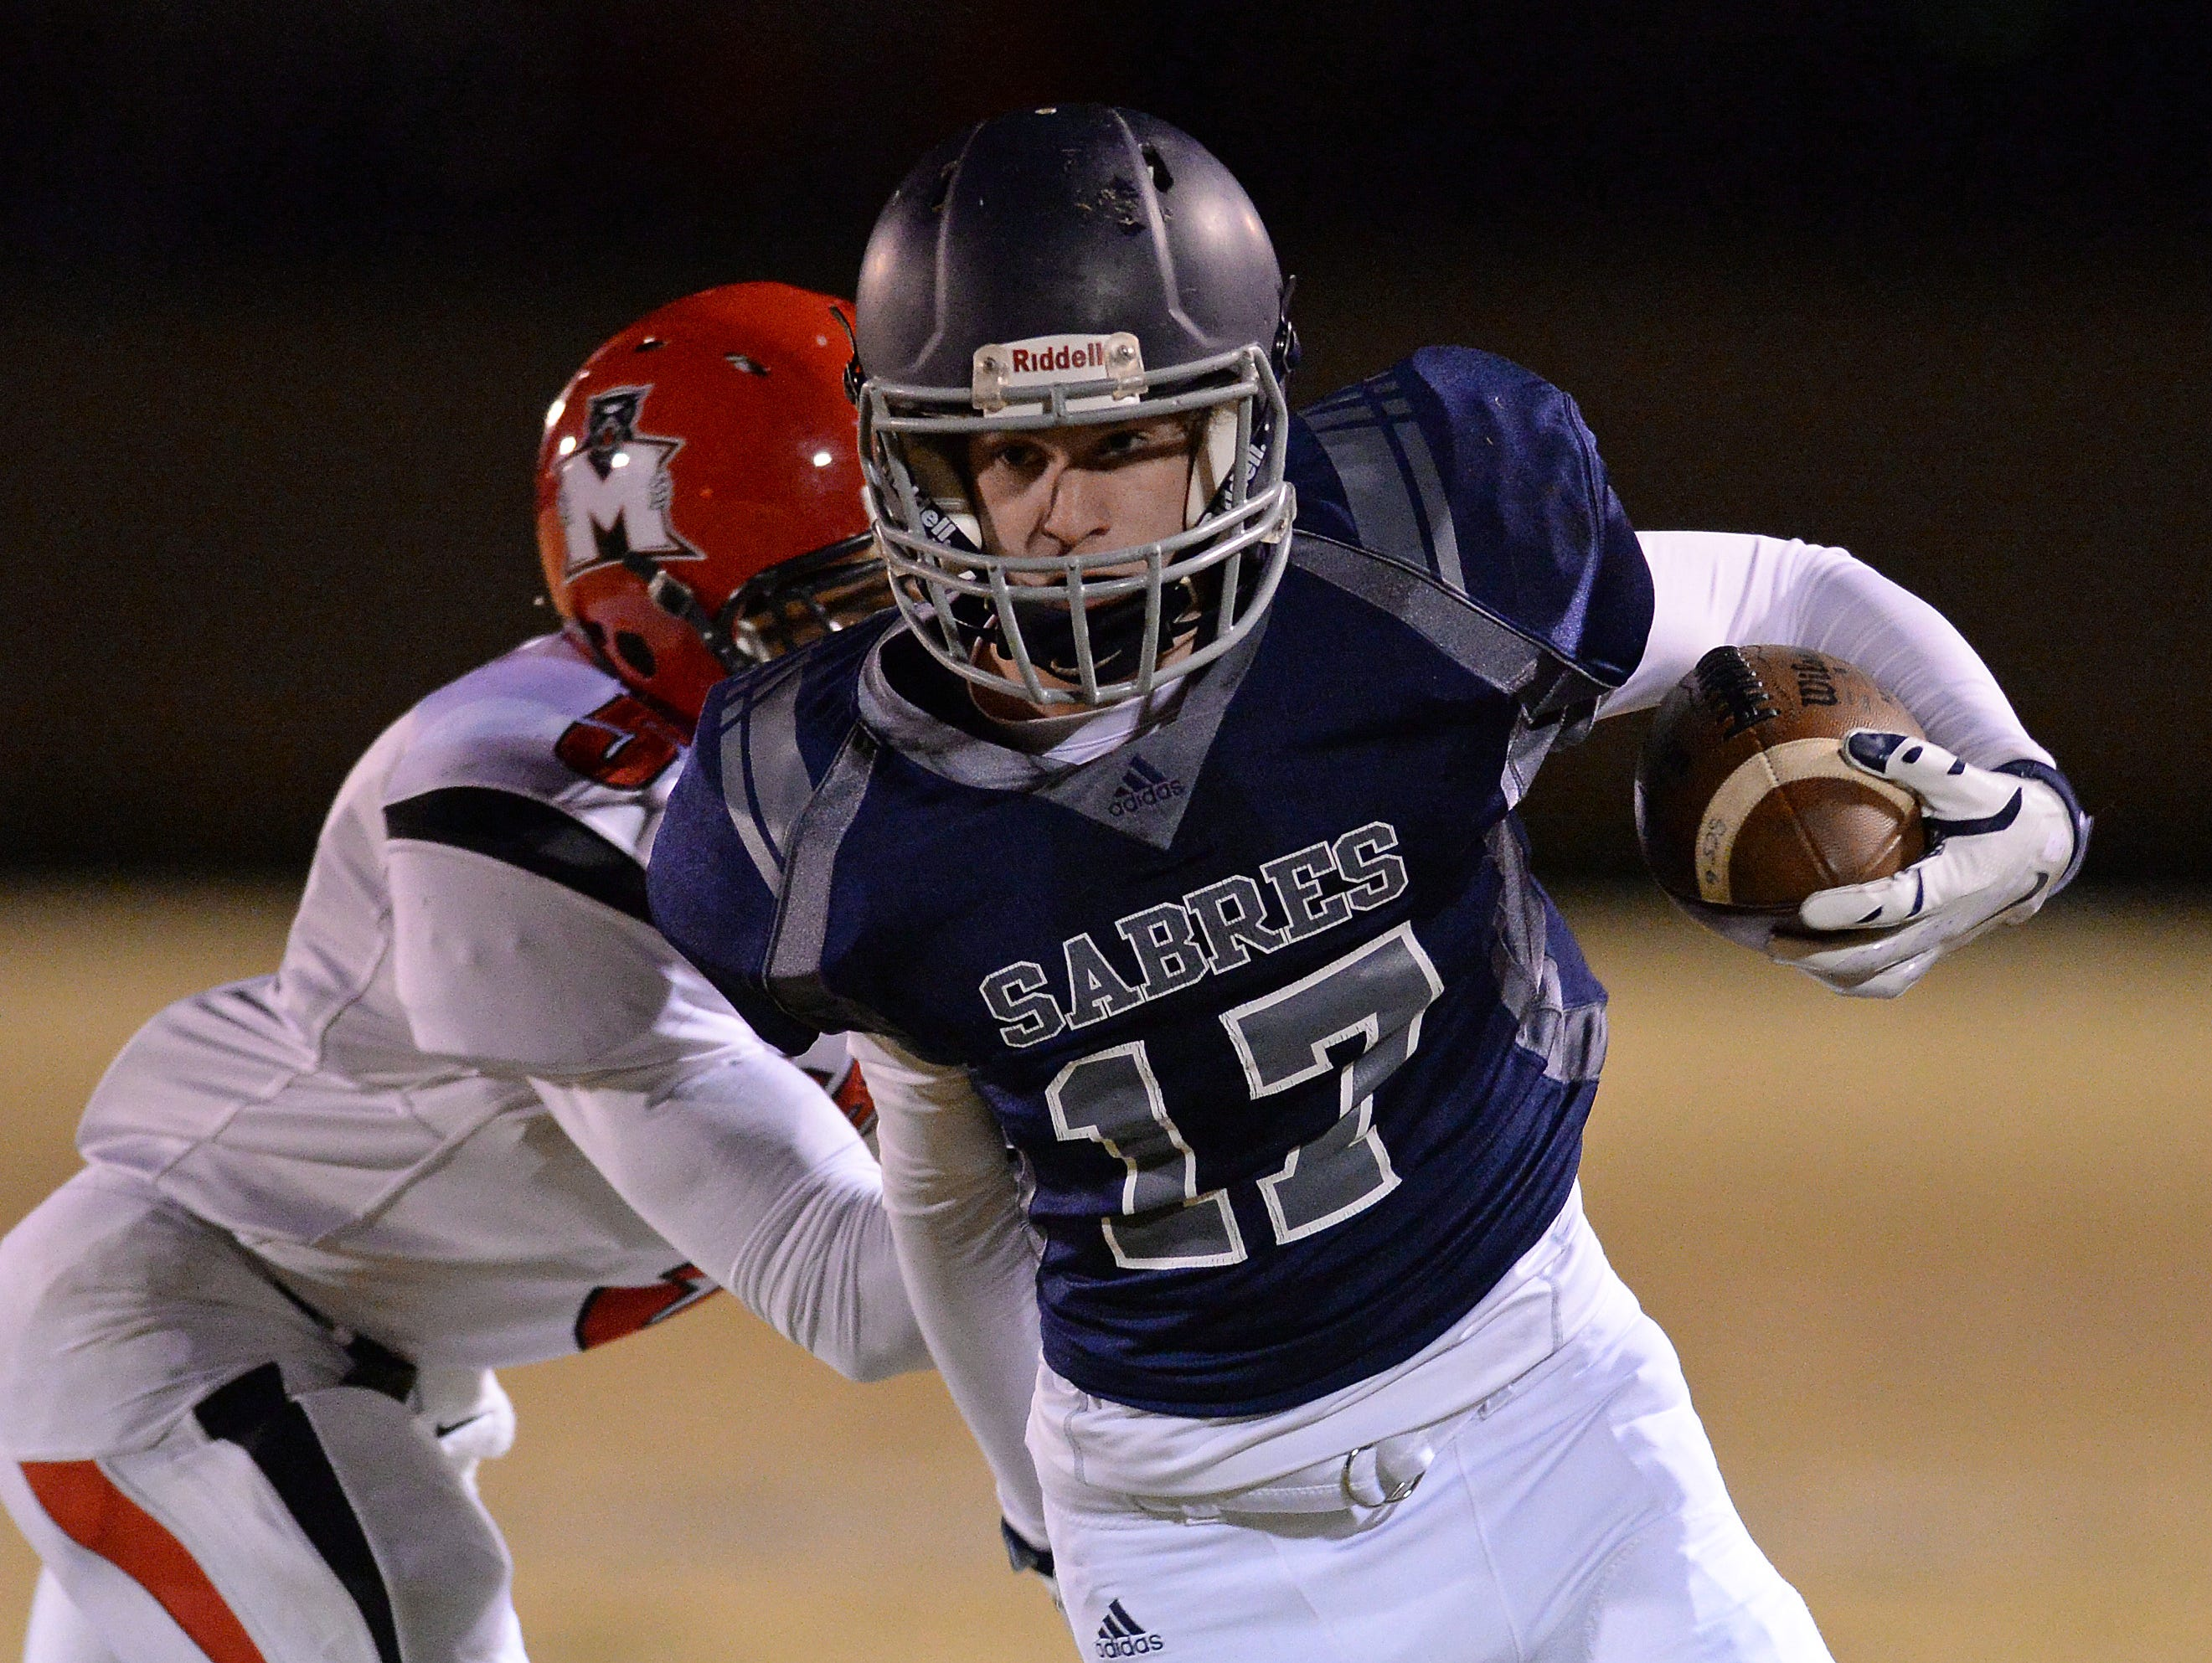 Southside Christian's Jon Taylor (17) carries past McBee's Chandler Linton (5) during the Class A Division I playoffs Friday, November 27, 2015.